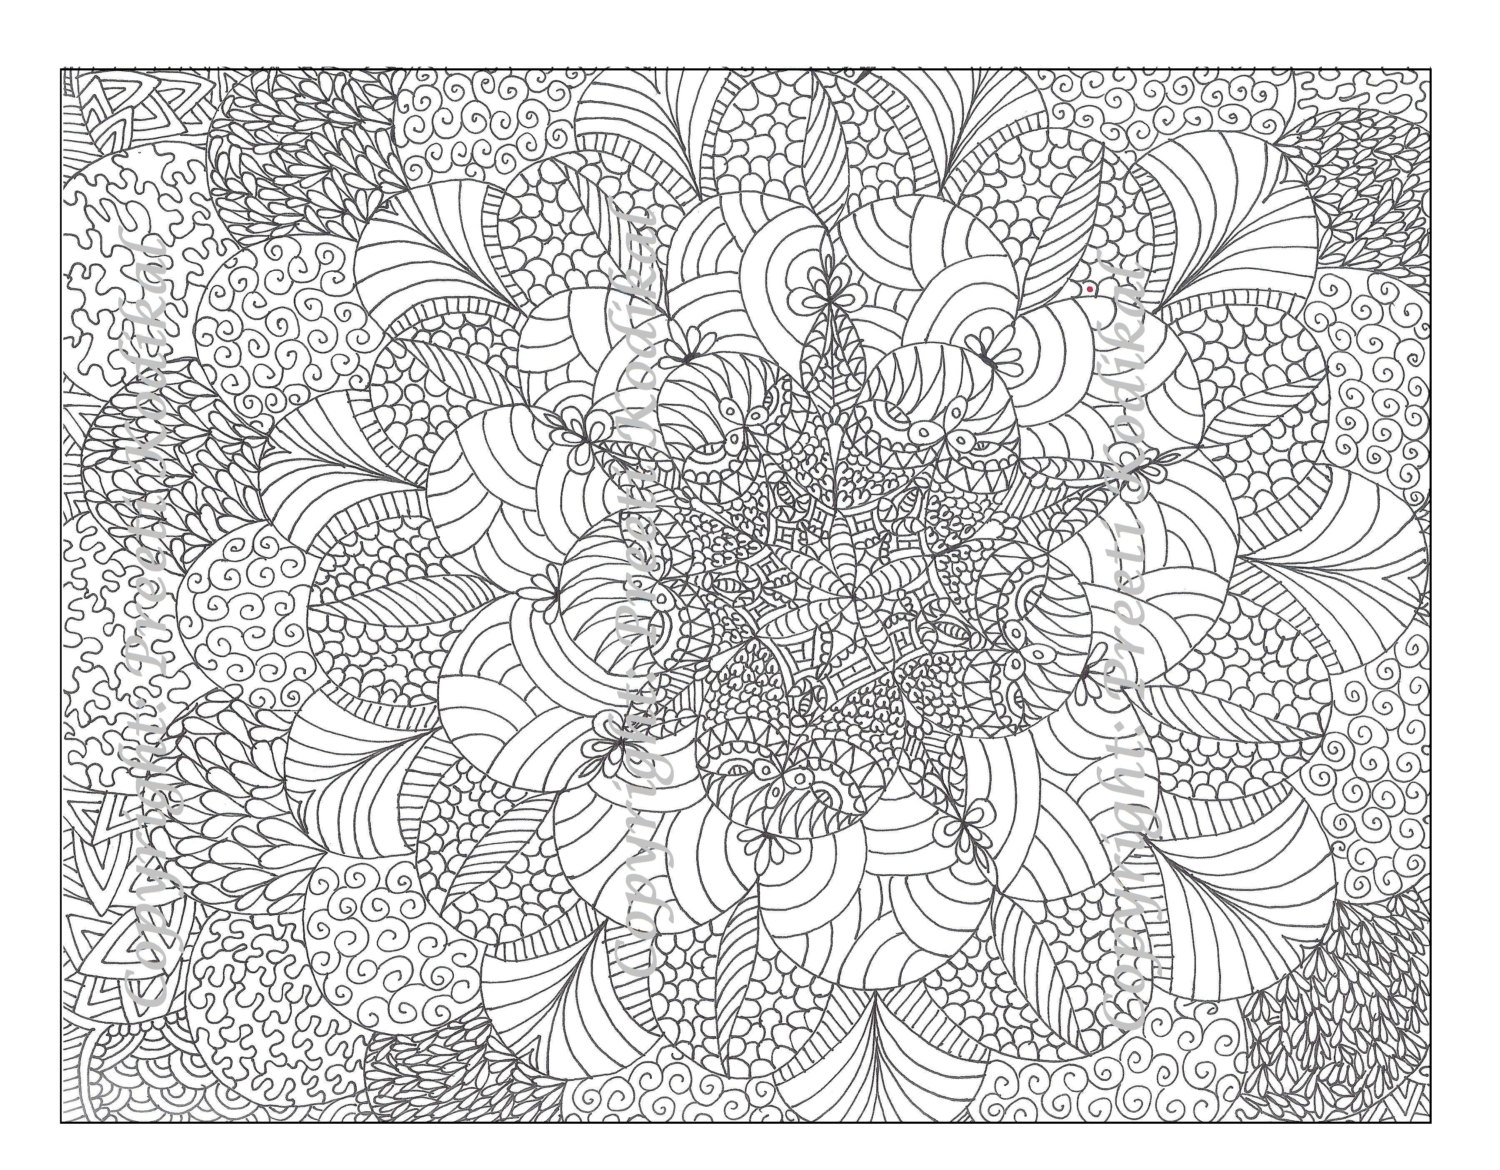 detailed coloring pages printable - Print Coloring Pages For Adults